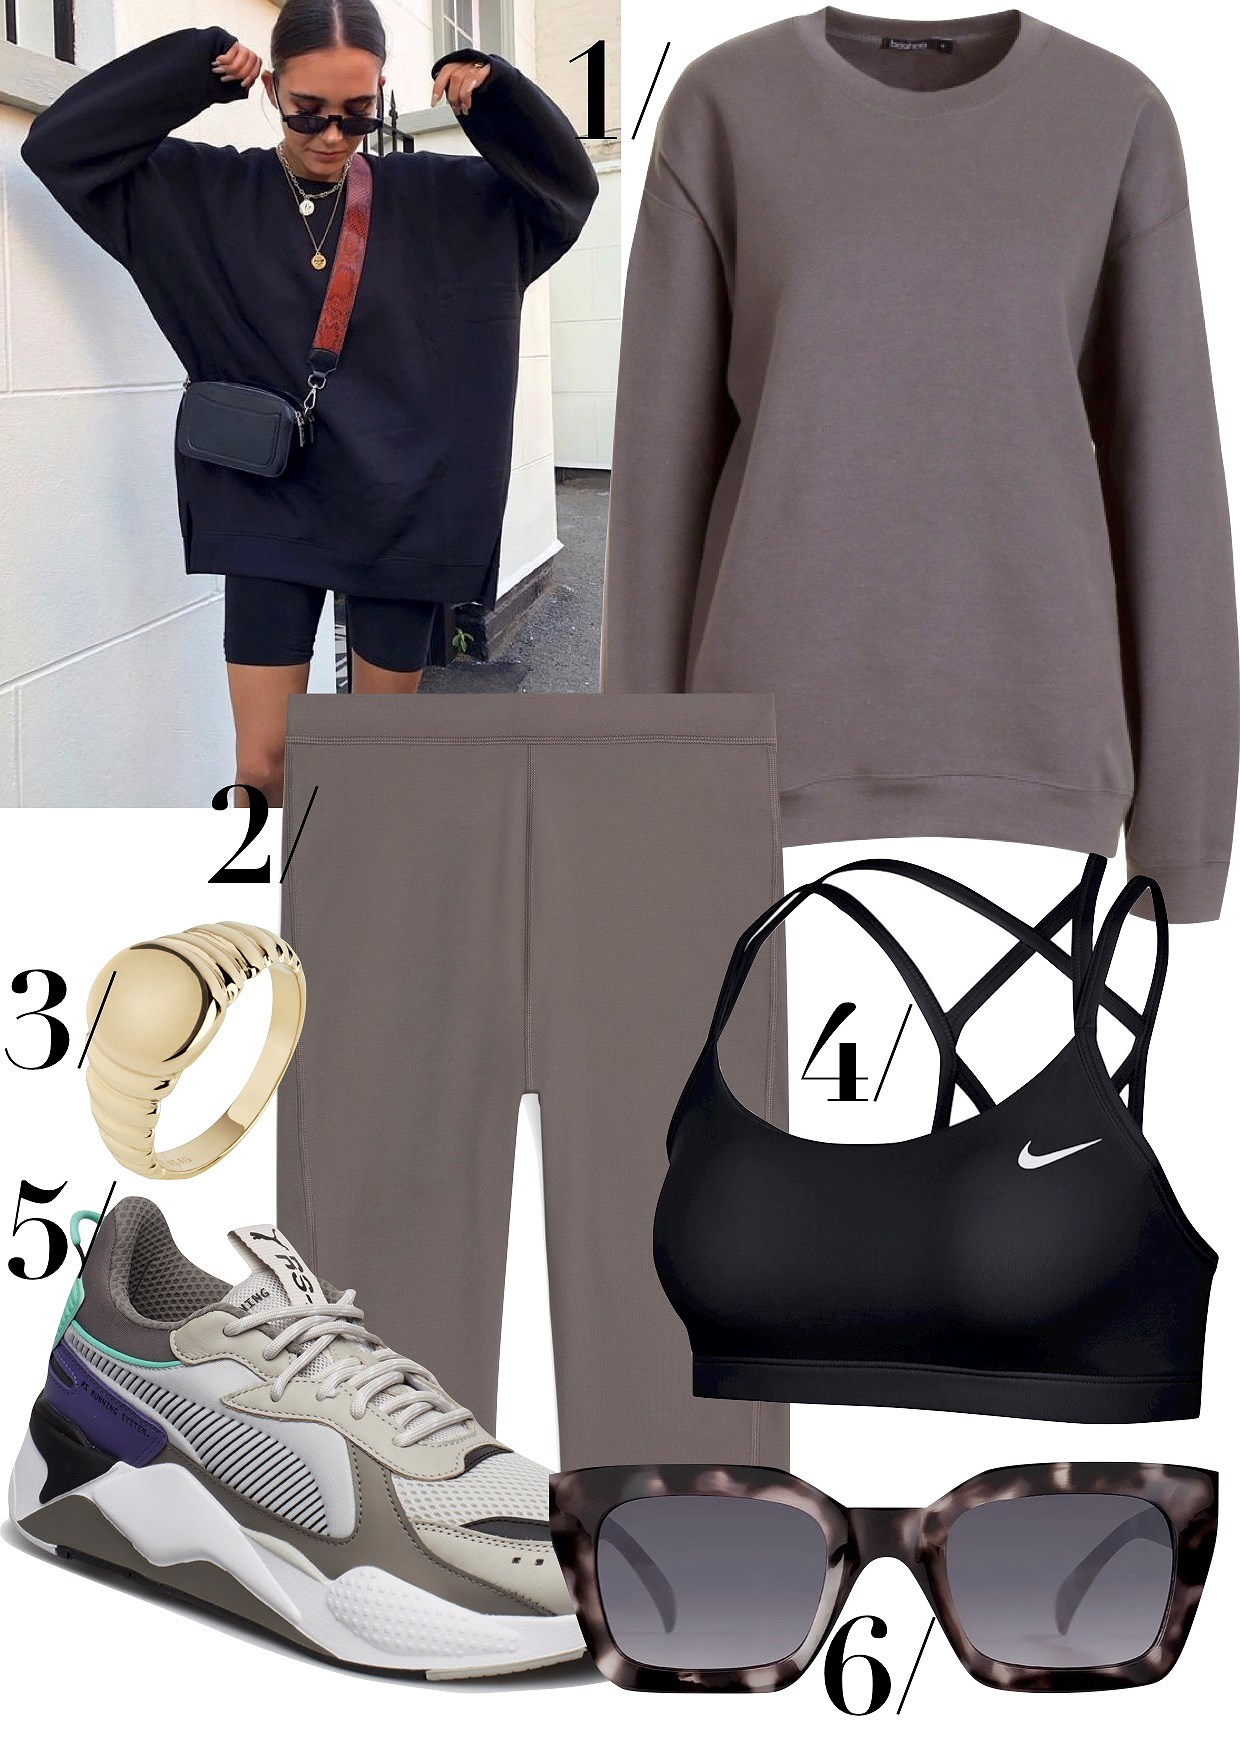 SPORTY OUTFIT INSPIRATION